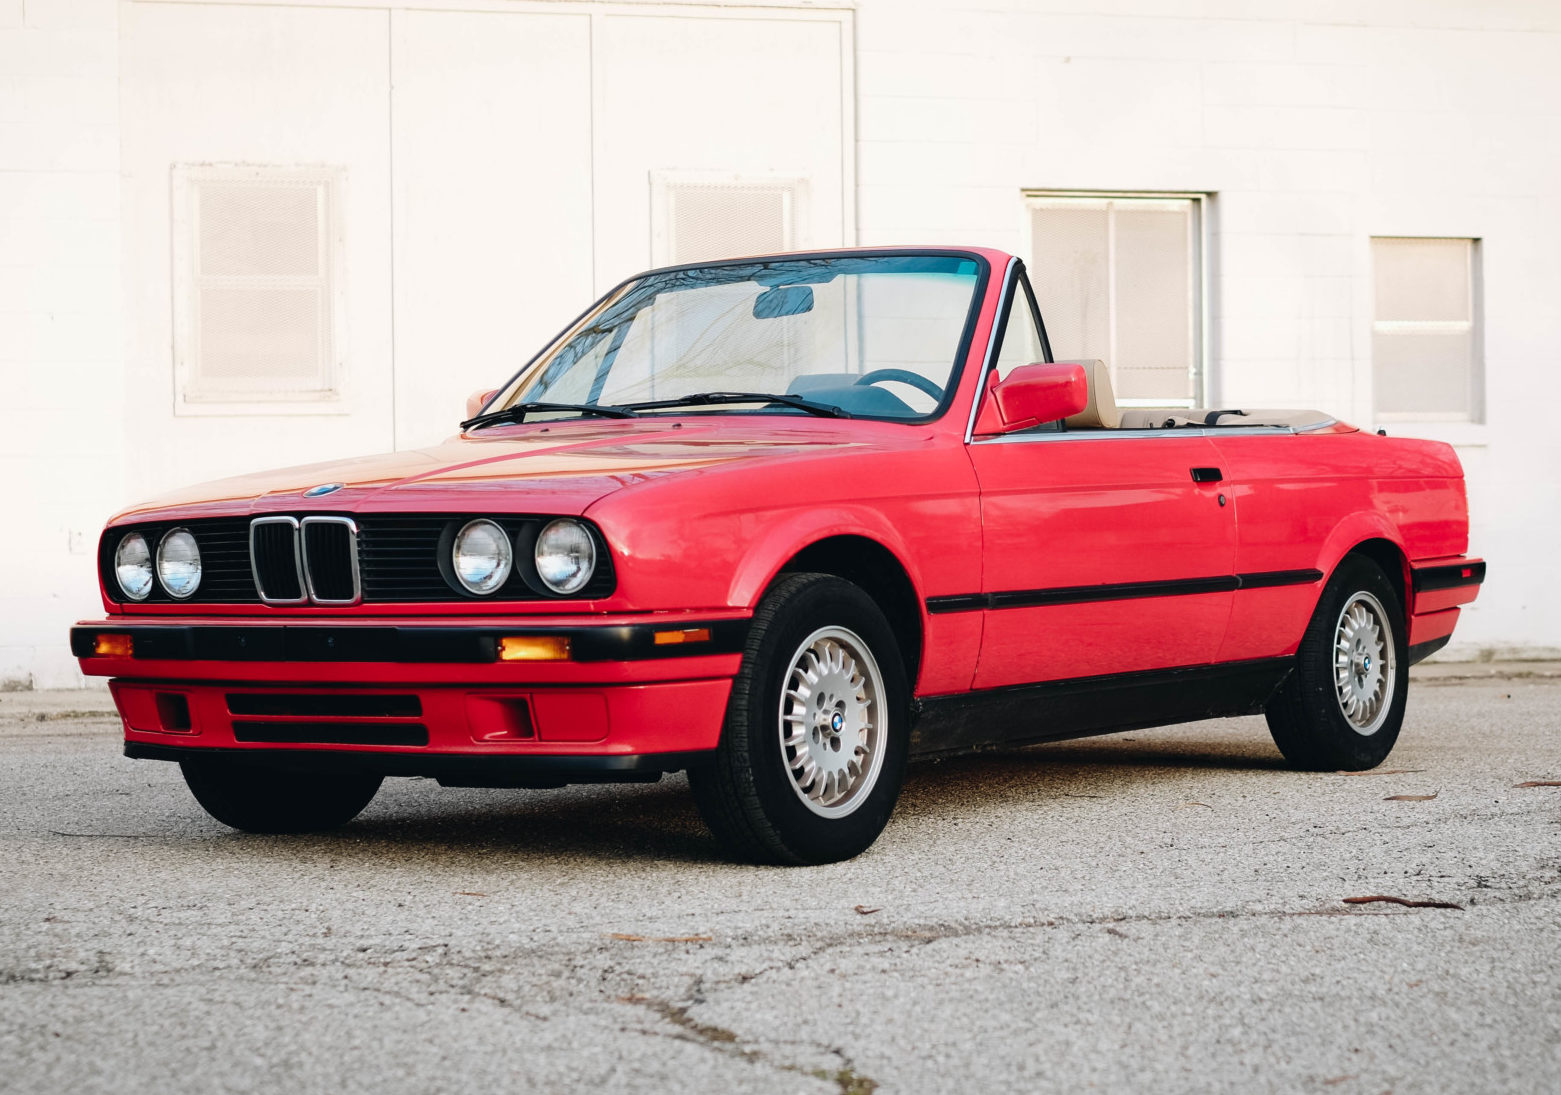 hight resolution of 1992 bmw 318i convertible 5 speed for sale on bat auctions sold for 8 400 on april 24 2018 lot 9 229 bring a trailer